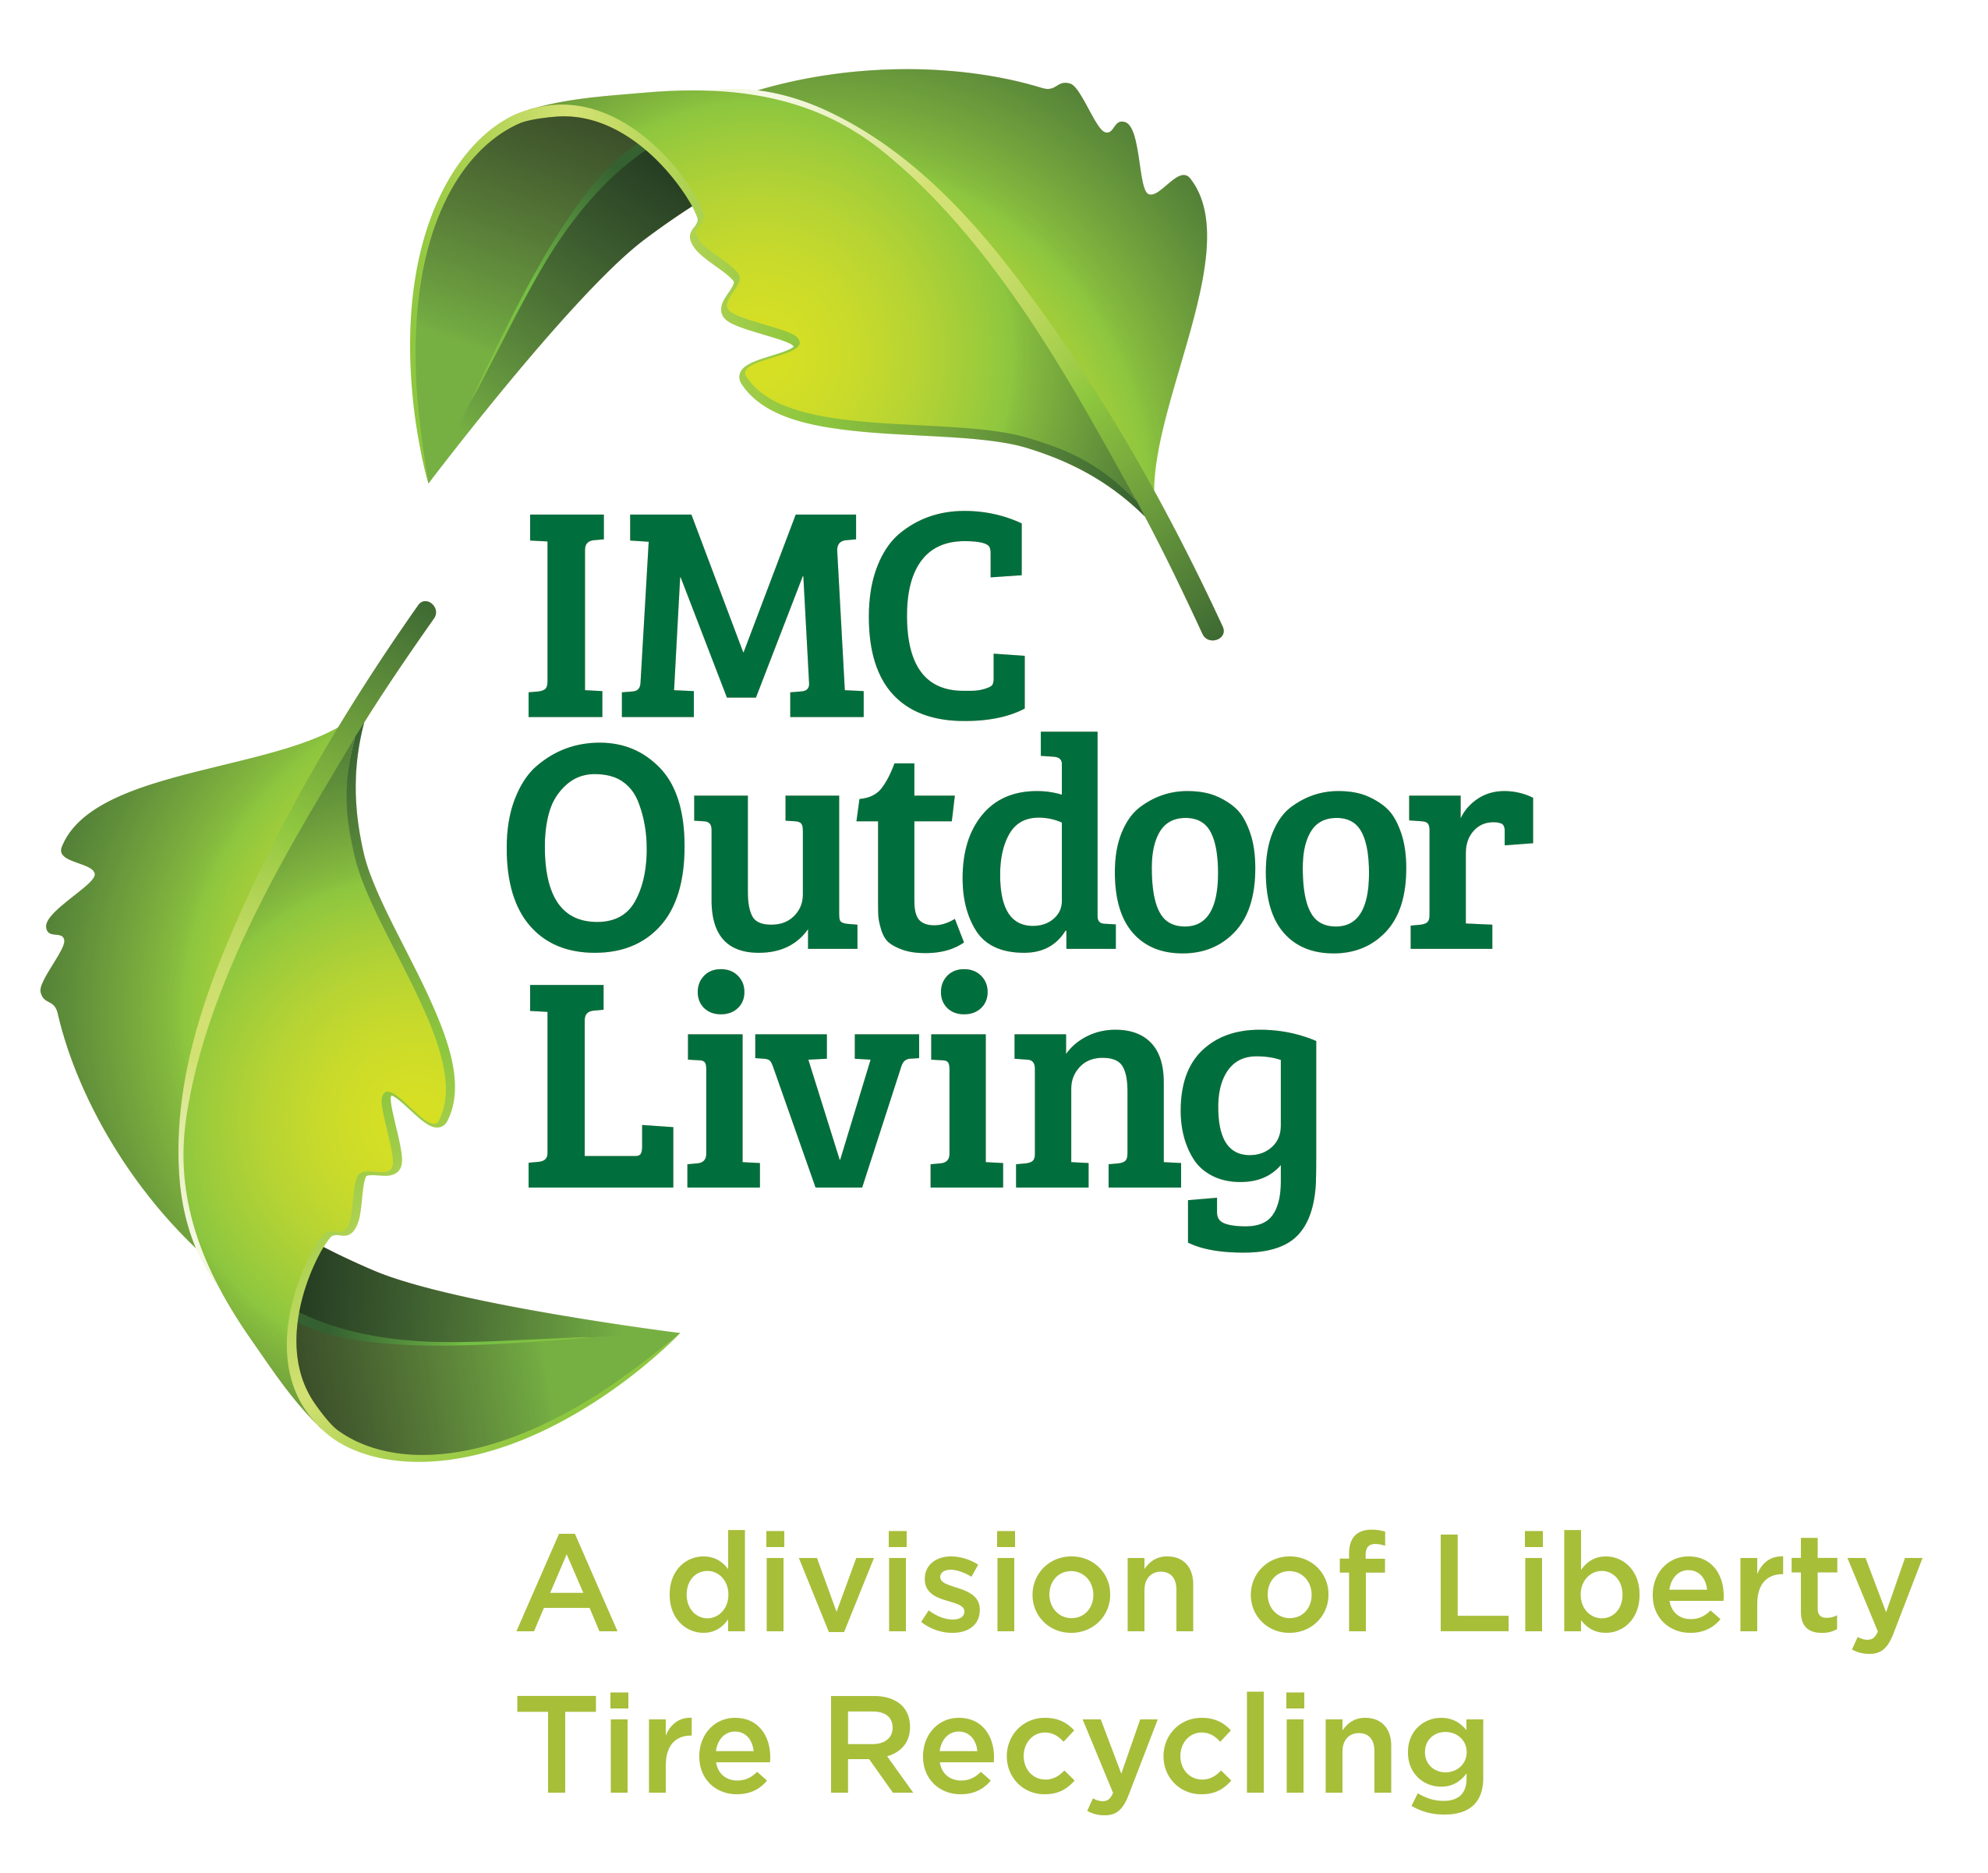 IMC Outdoor Living